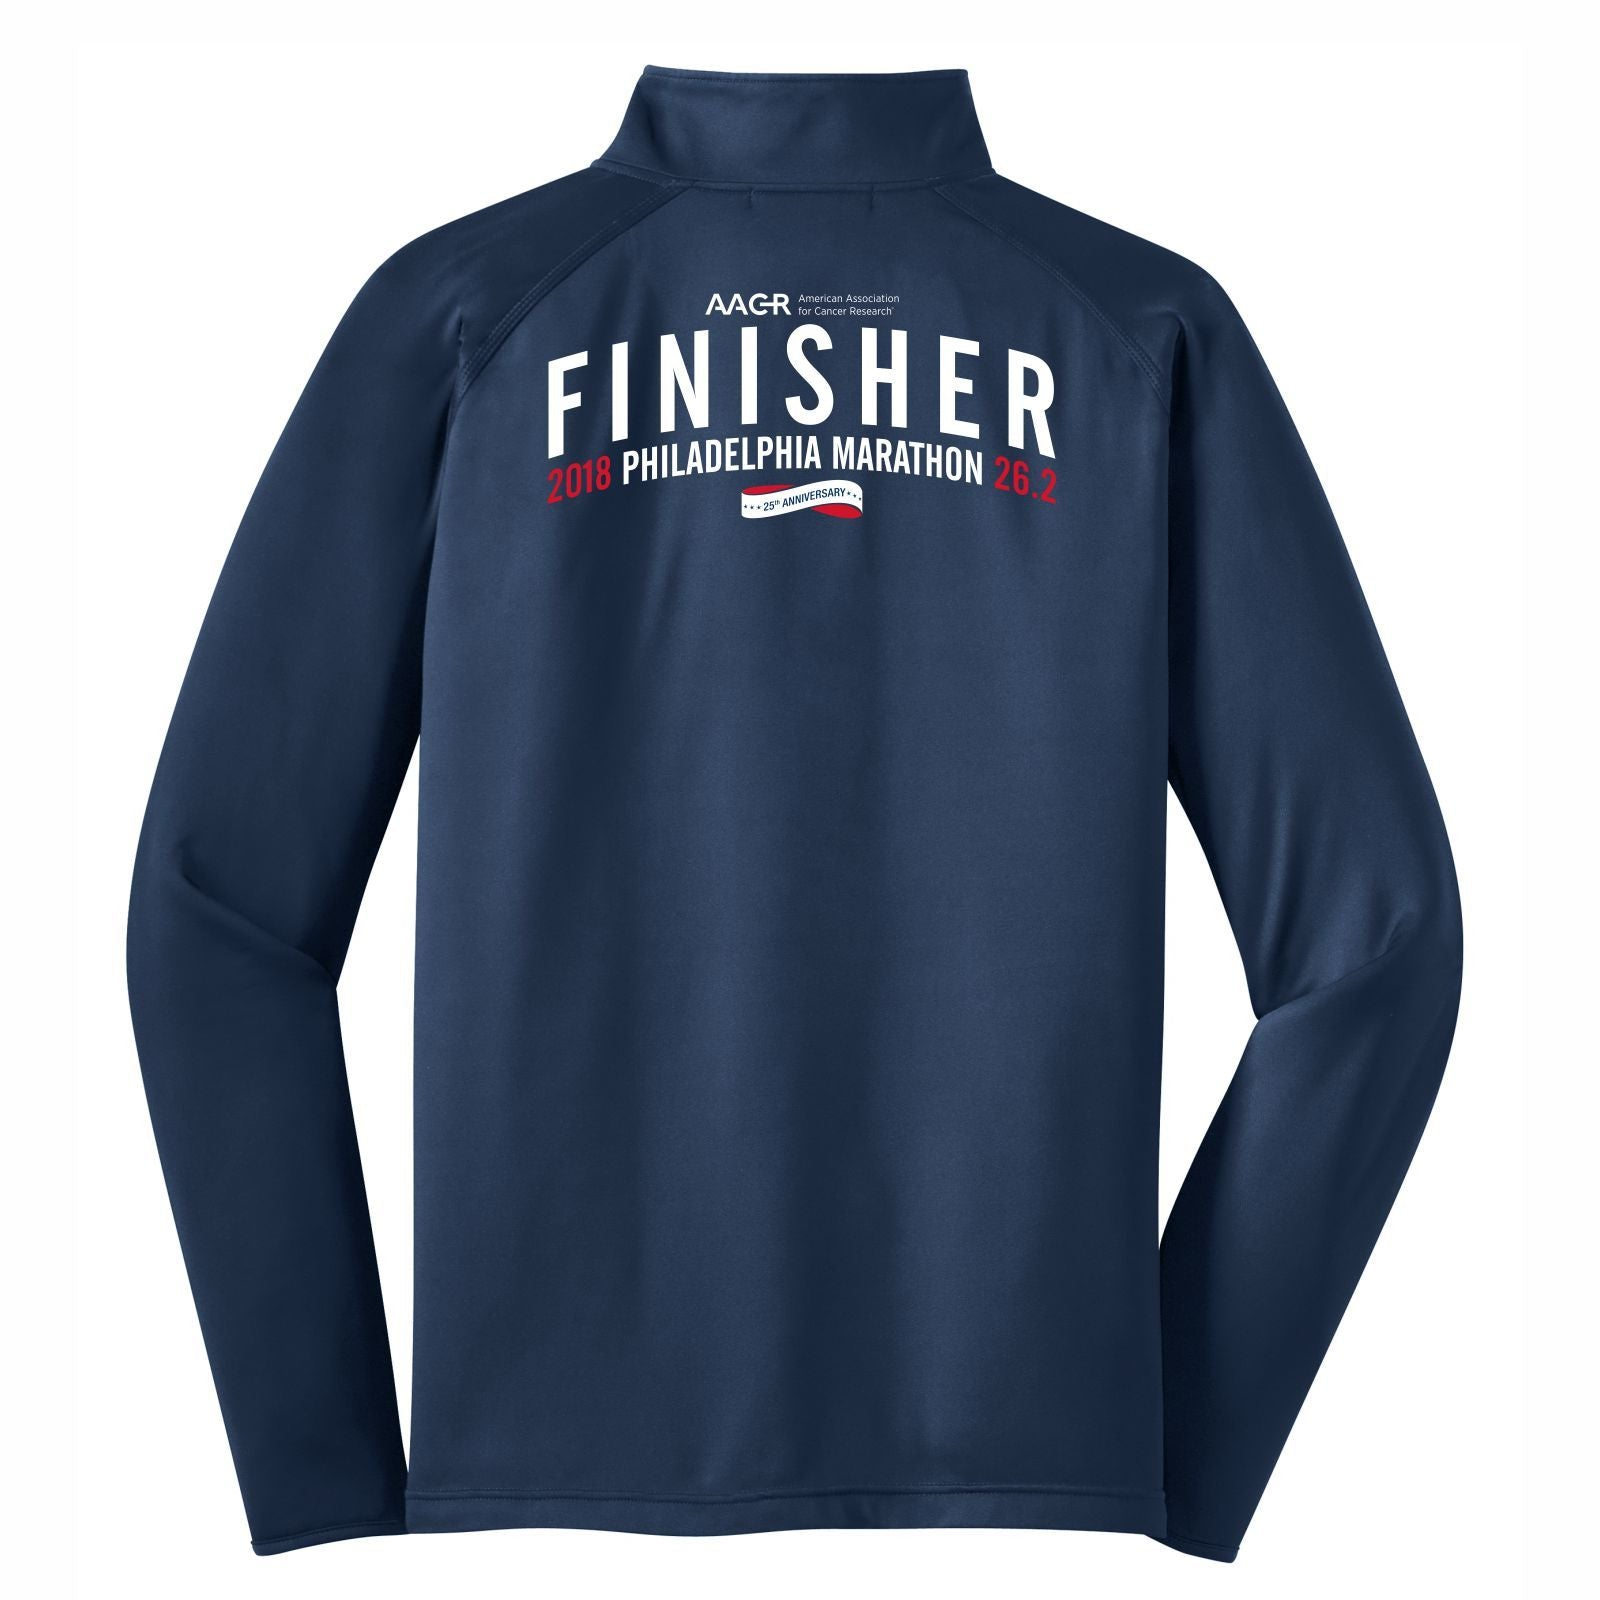 AACR Philadelphia Marathon : '2018 25th Anniversary Finisher 26.2' Men's 1/4 Zip Tech Pullover - Heather Navy